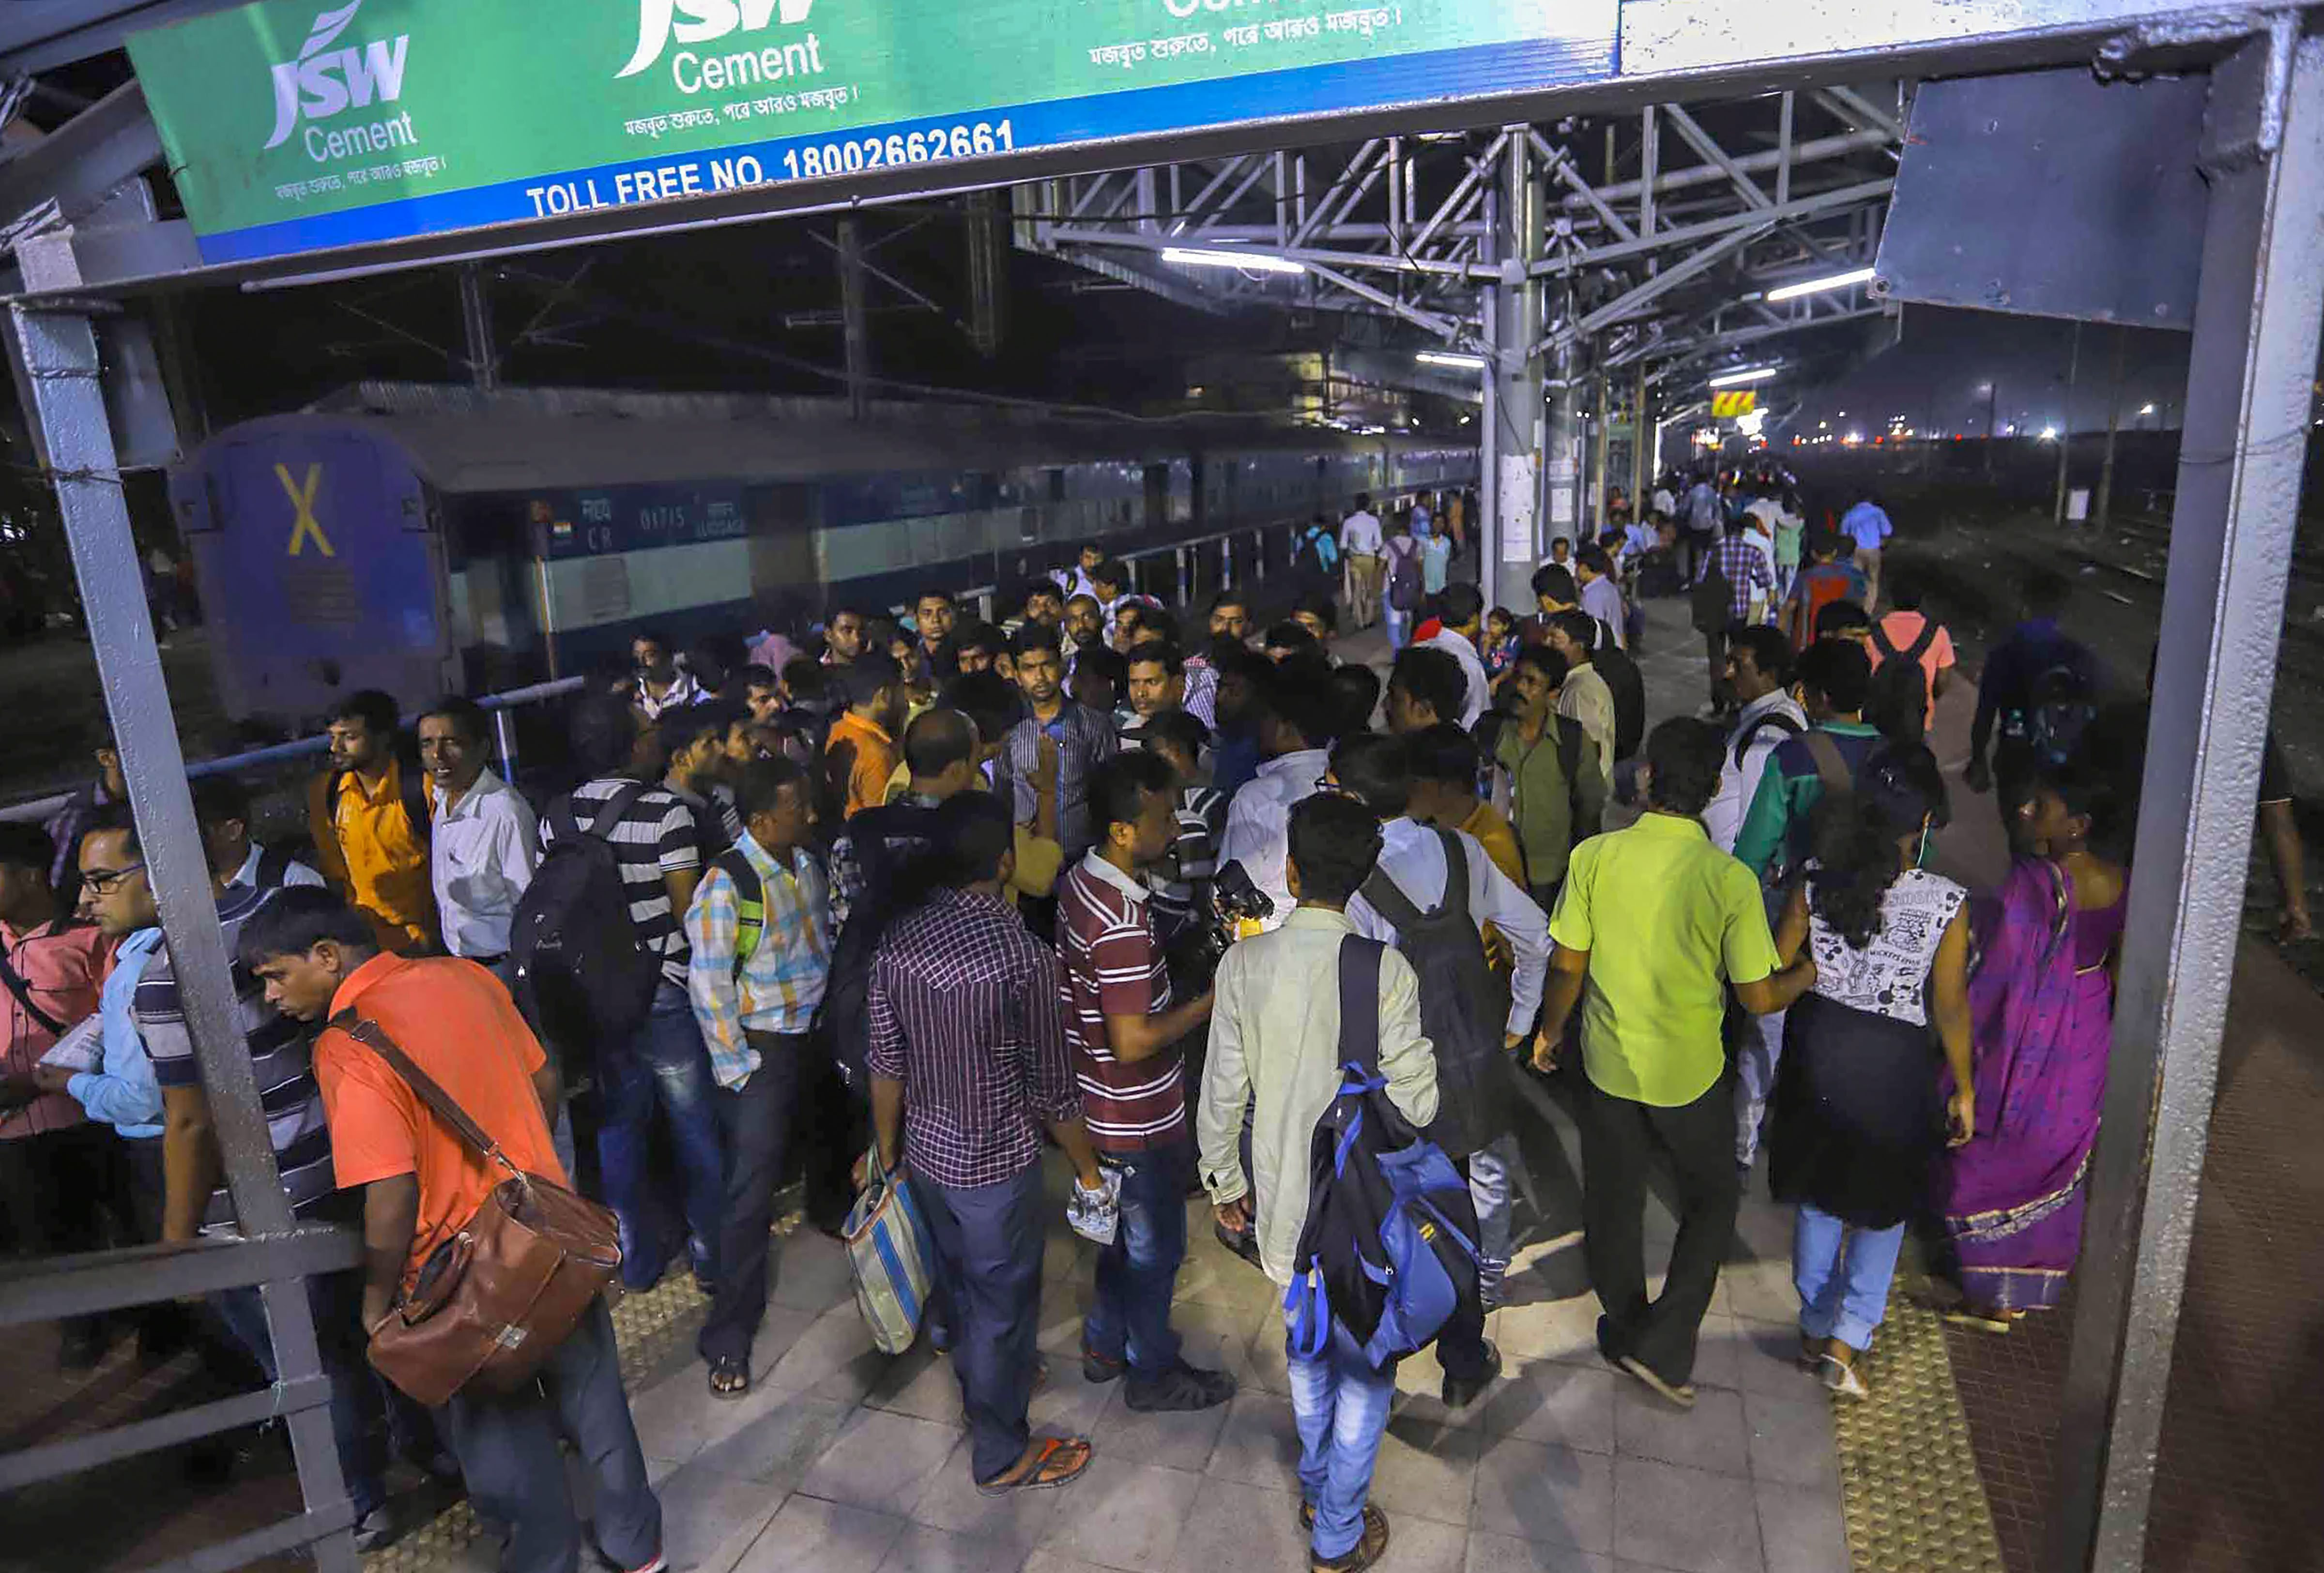 Passengers at a platform at Santragachi Station where a stampede took place, in Howrah district of West Bengal - PTI